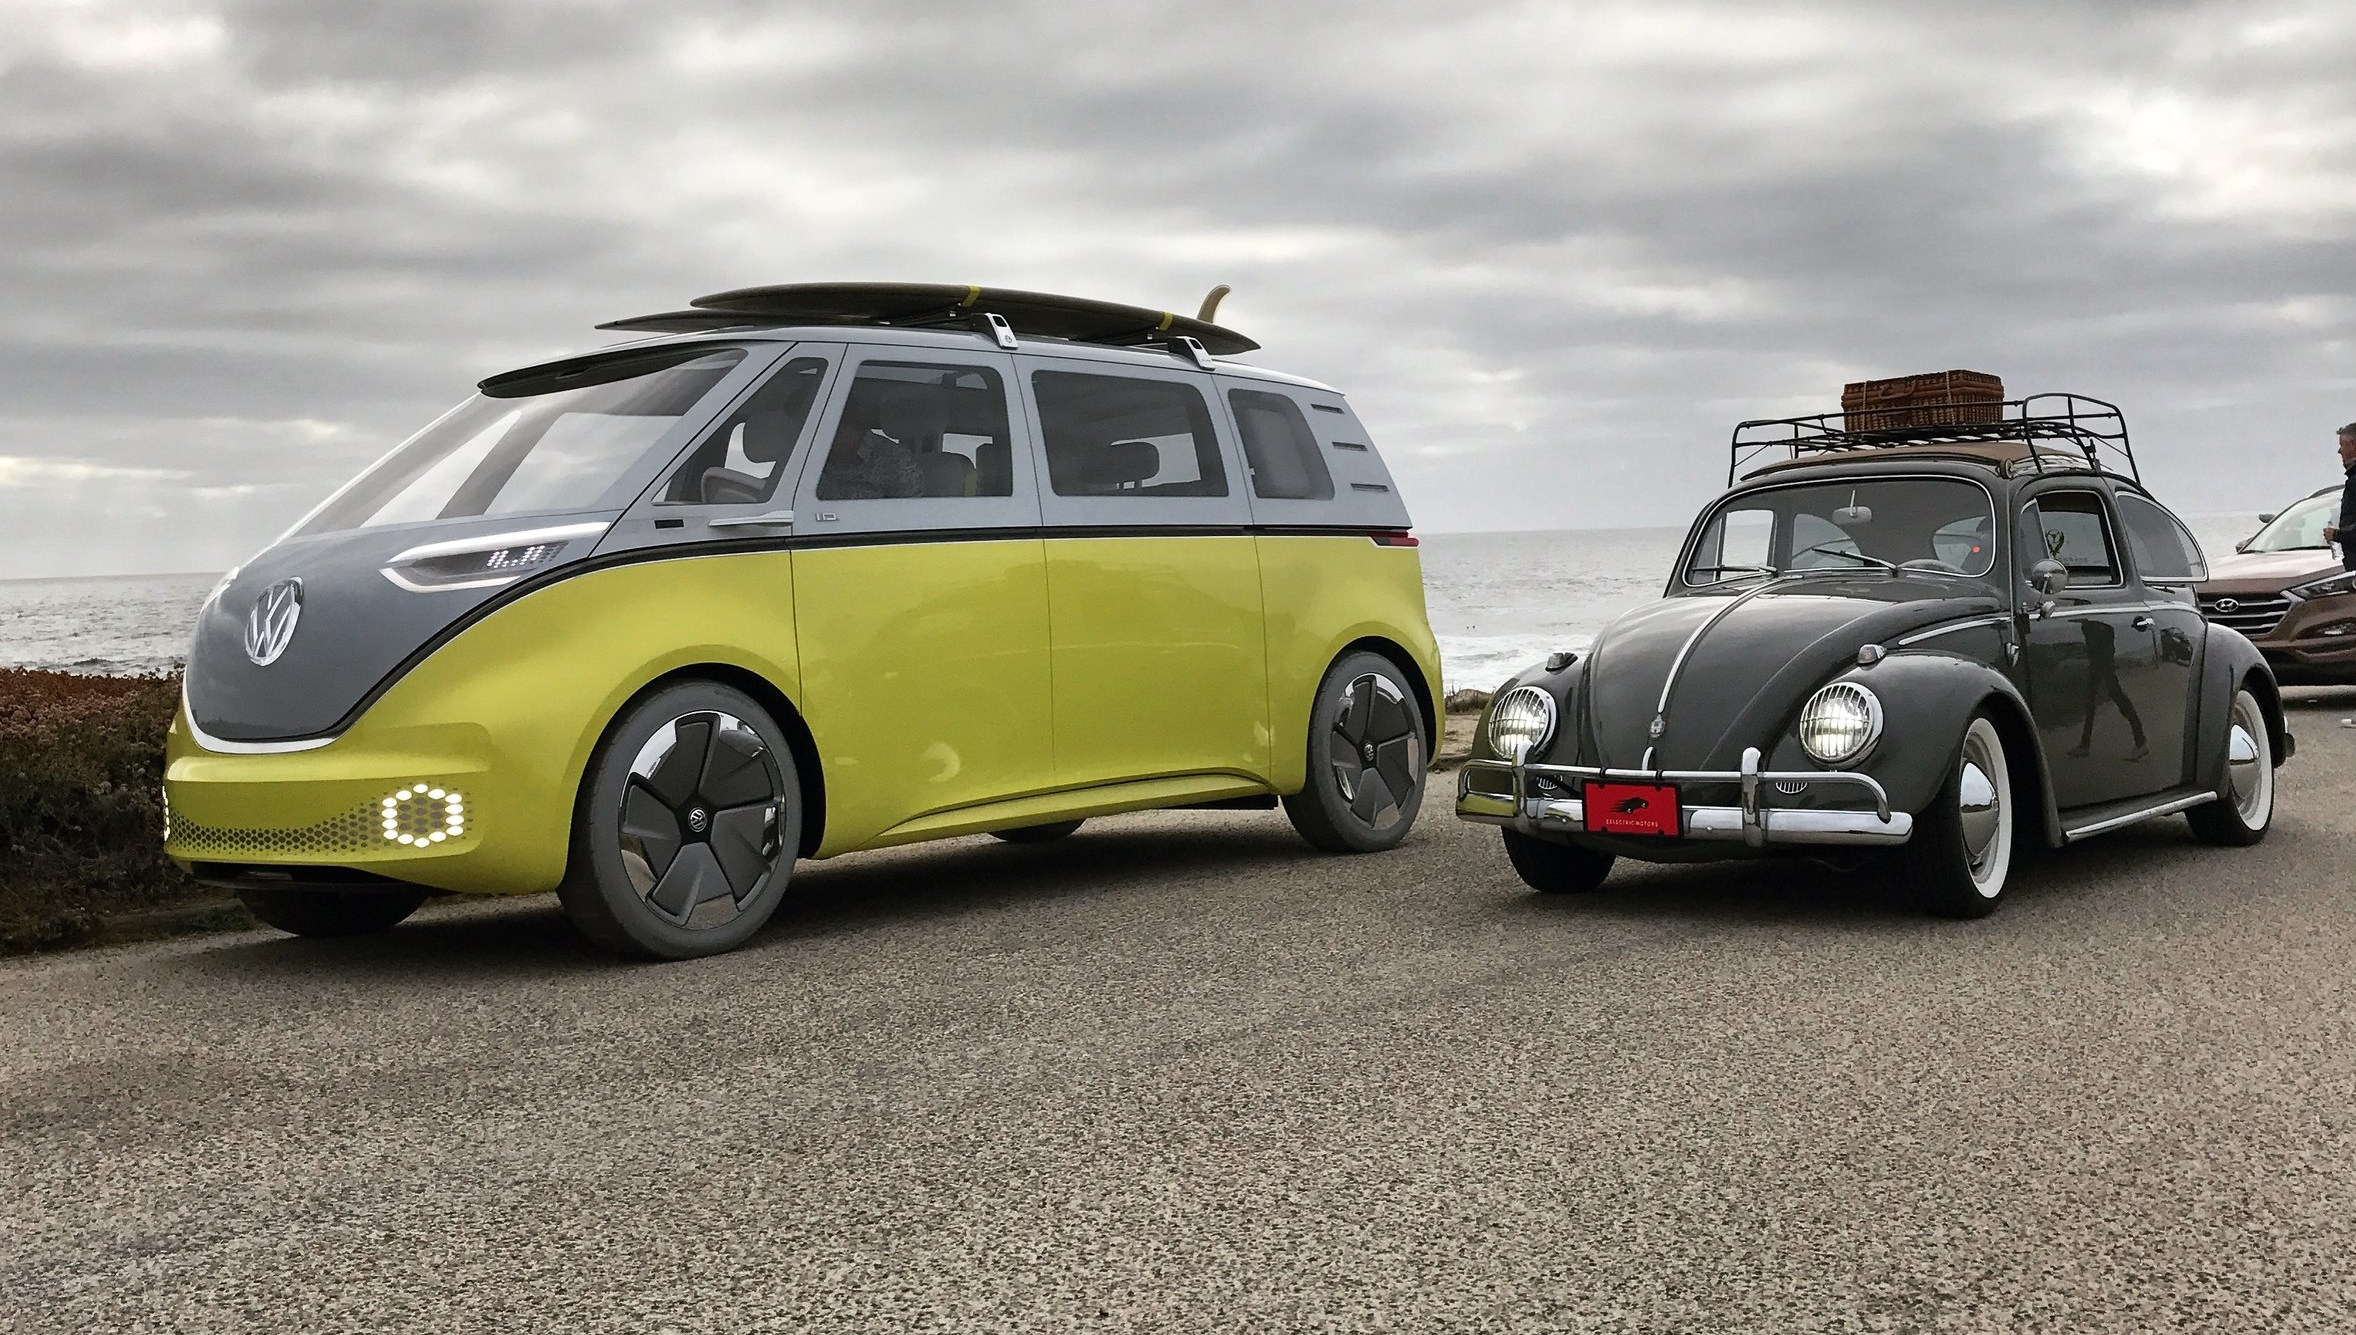 Left, Future I.D. Buzz. Right, Retro-Future Zelectric. Both 100% electric. Pebble Beach, 2017.